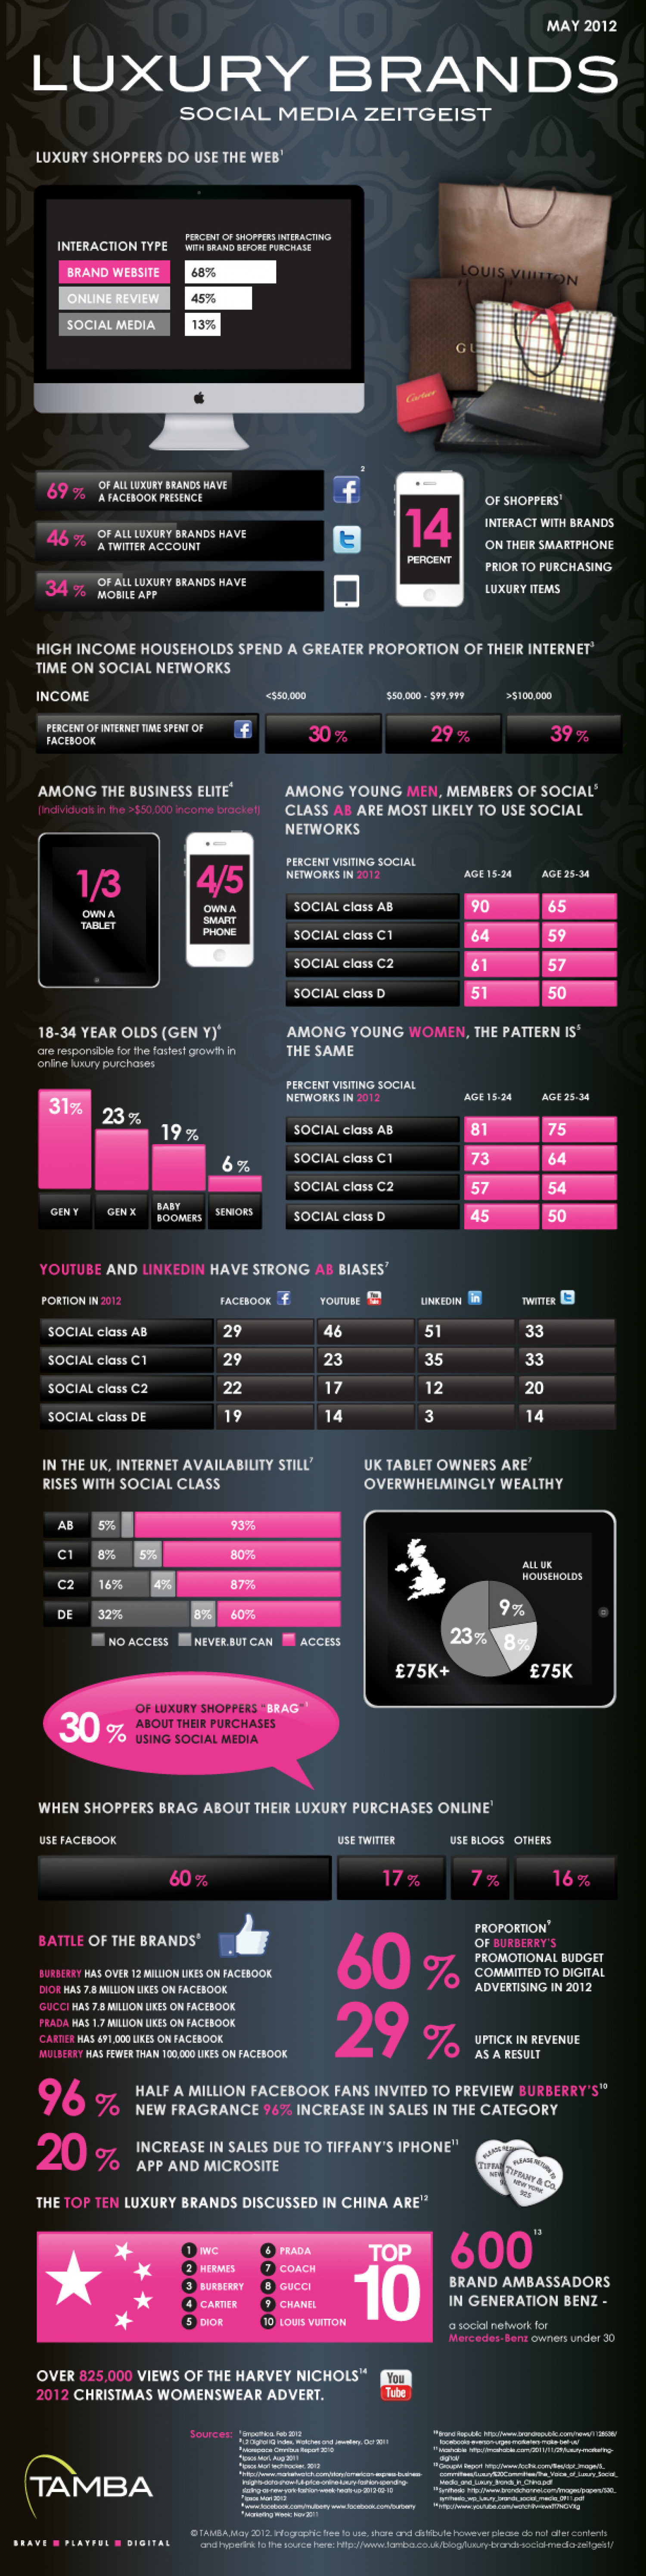 Luxury Brands Social Media Zeitgeist Infographic